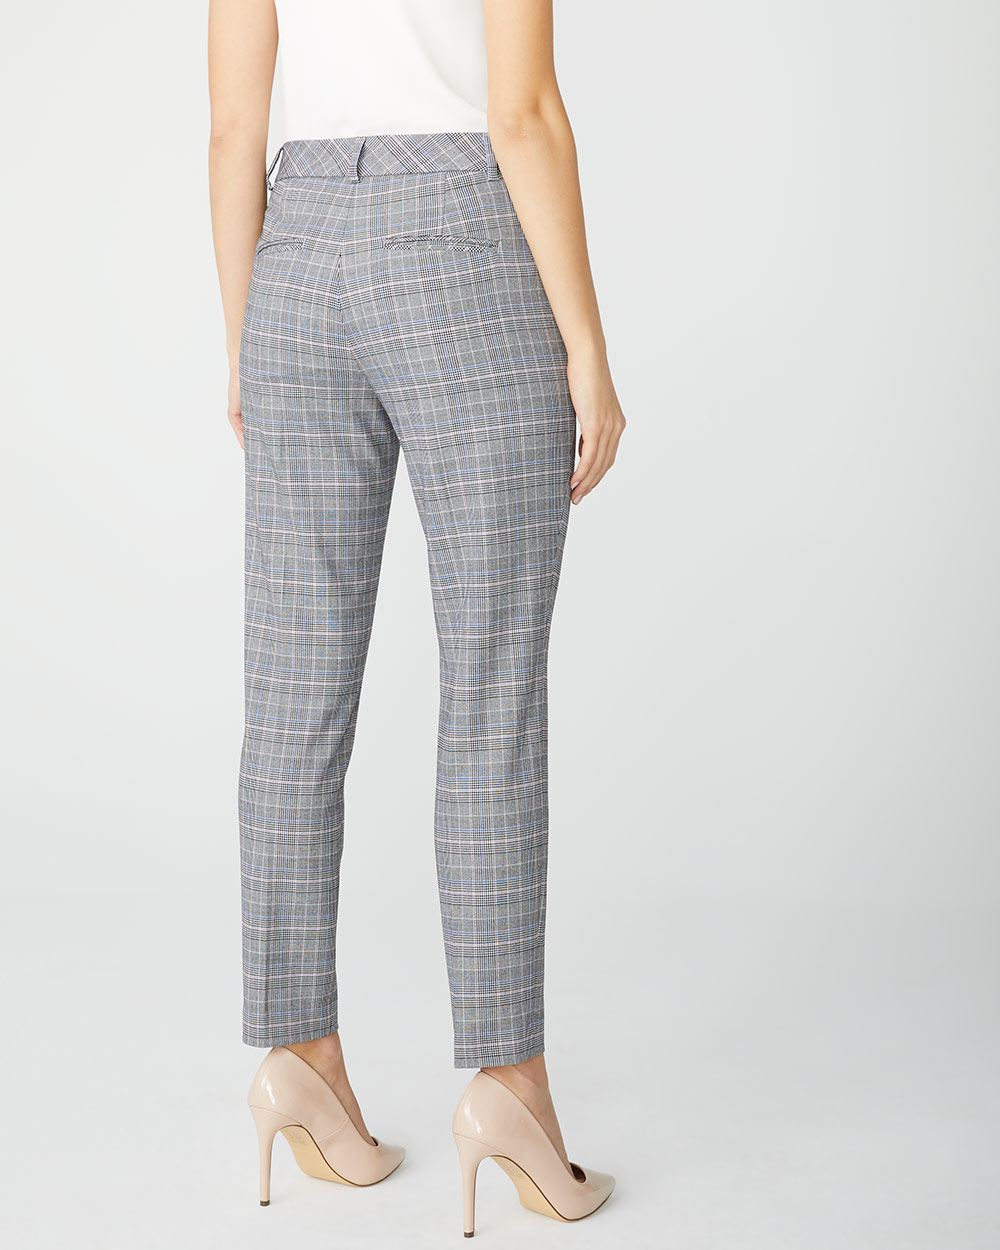 Pink and Blue Plaid Slim Leg ankle pant